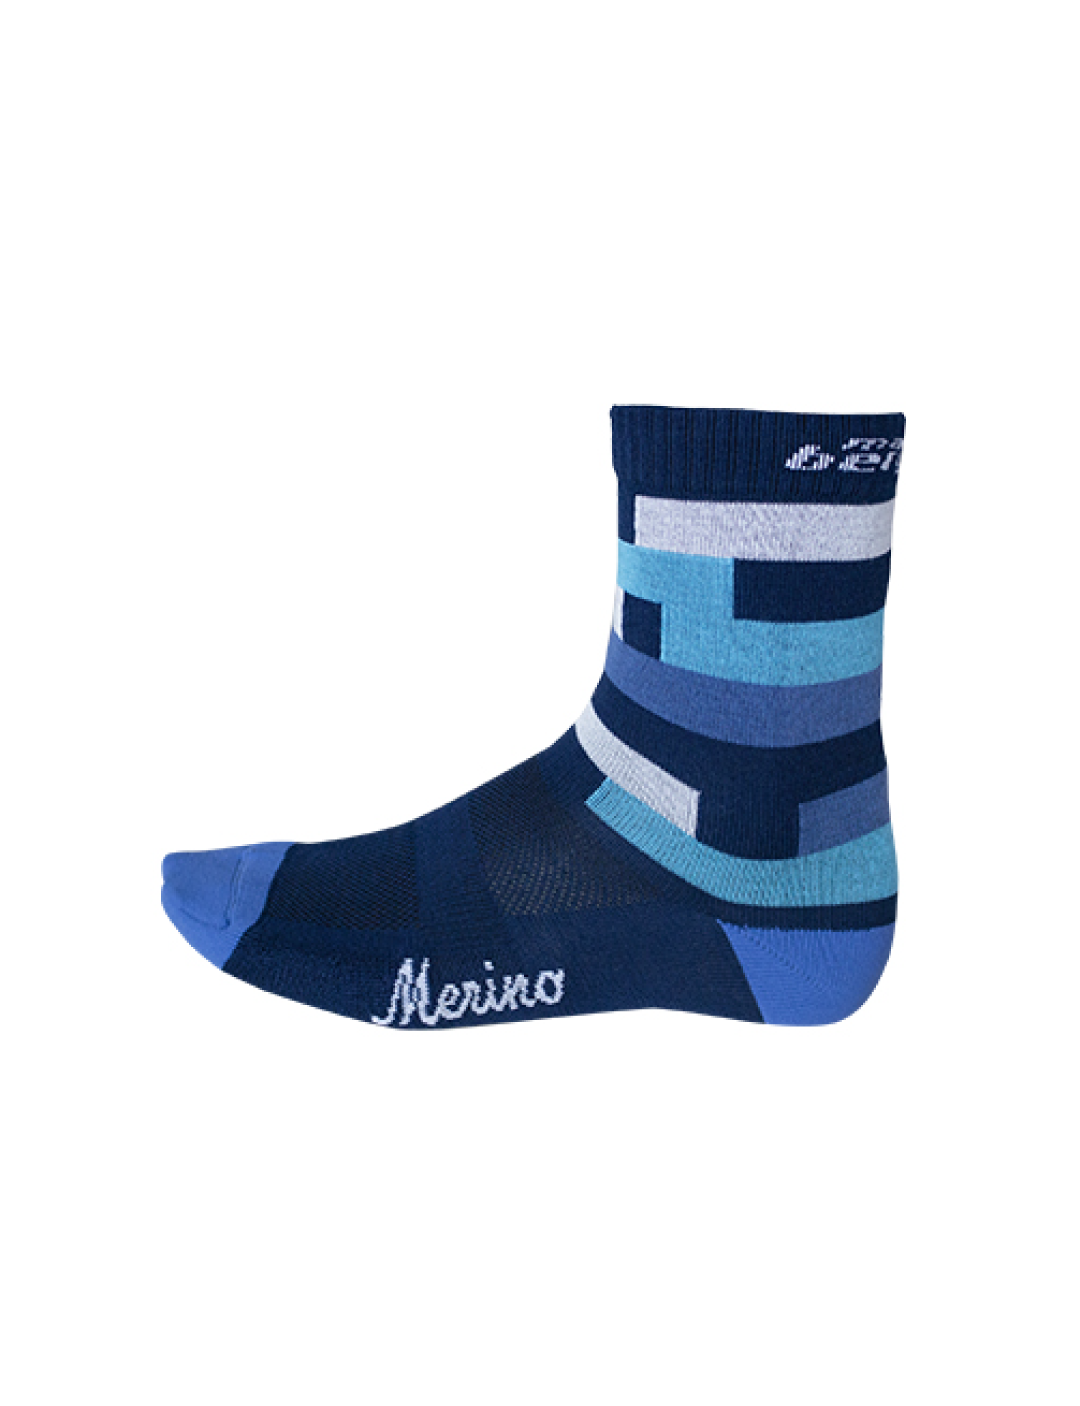 Team Merino Winter Socks - Blue